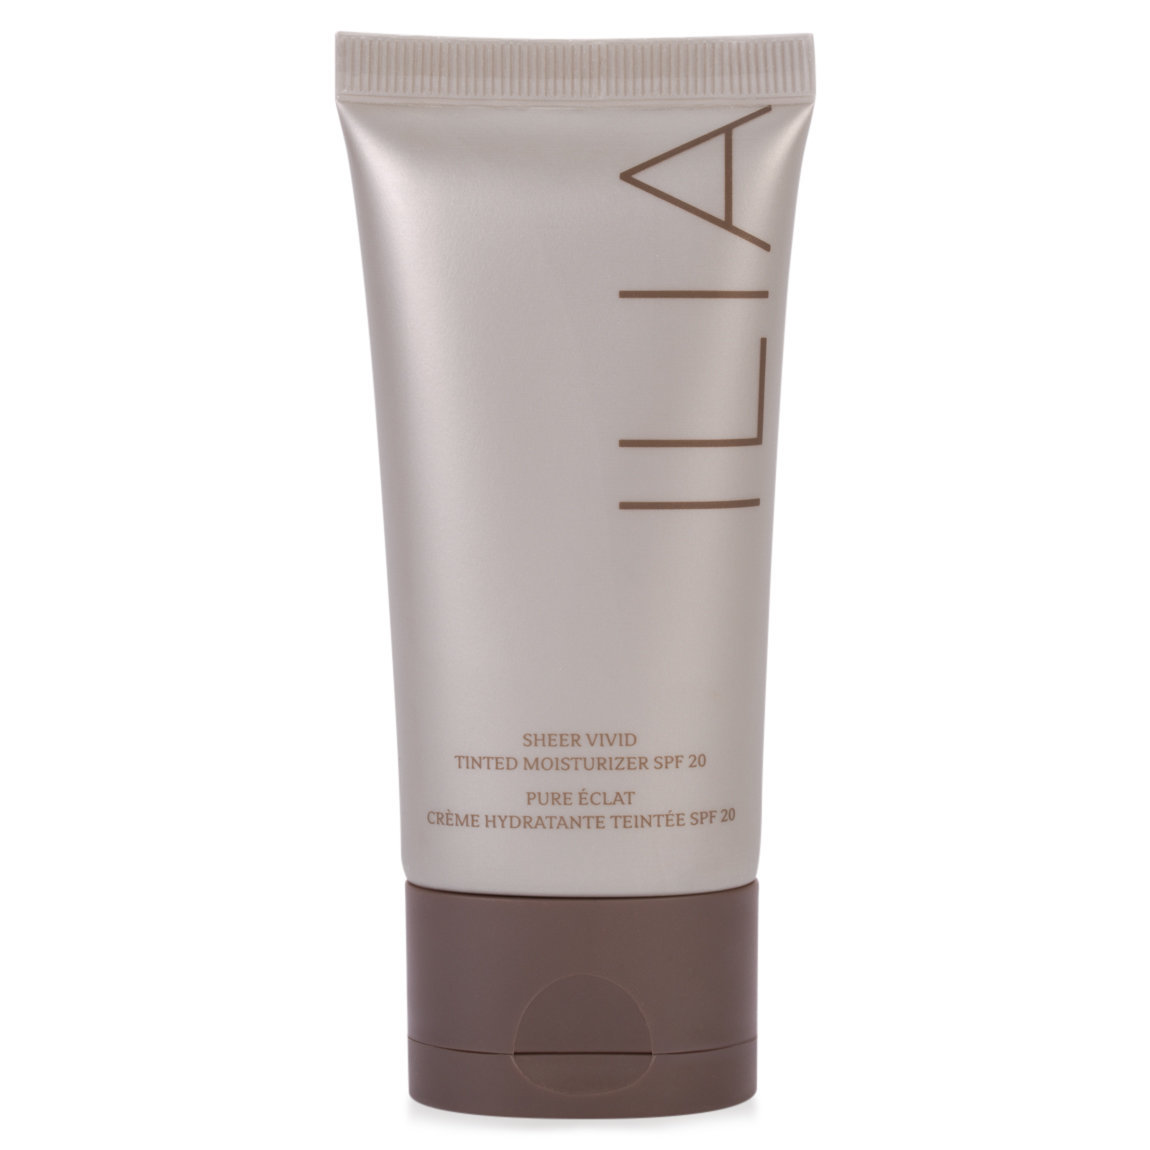 ILIA Sheer Vivid Tinted Moisturizer SPF 20 Belle Marre T2 (Light)